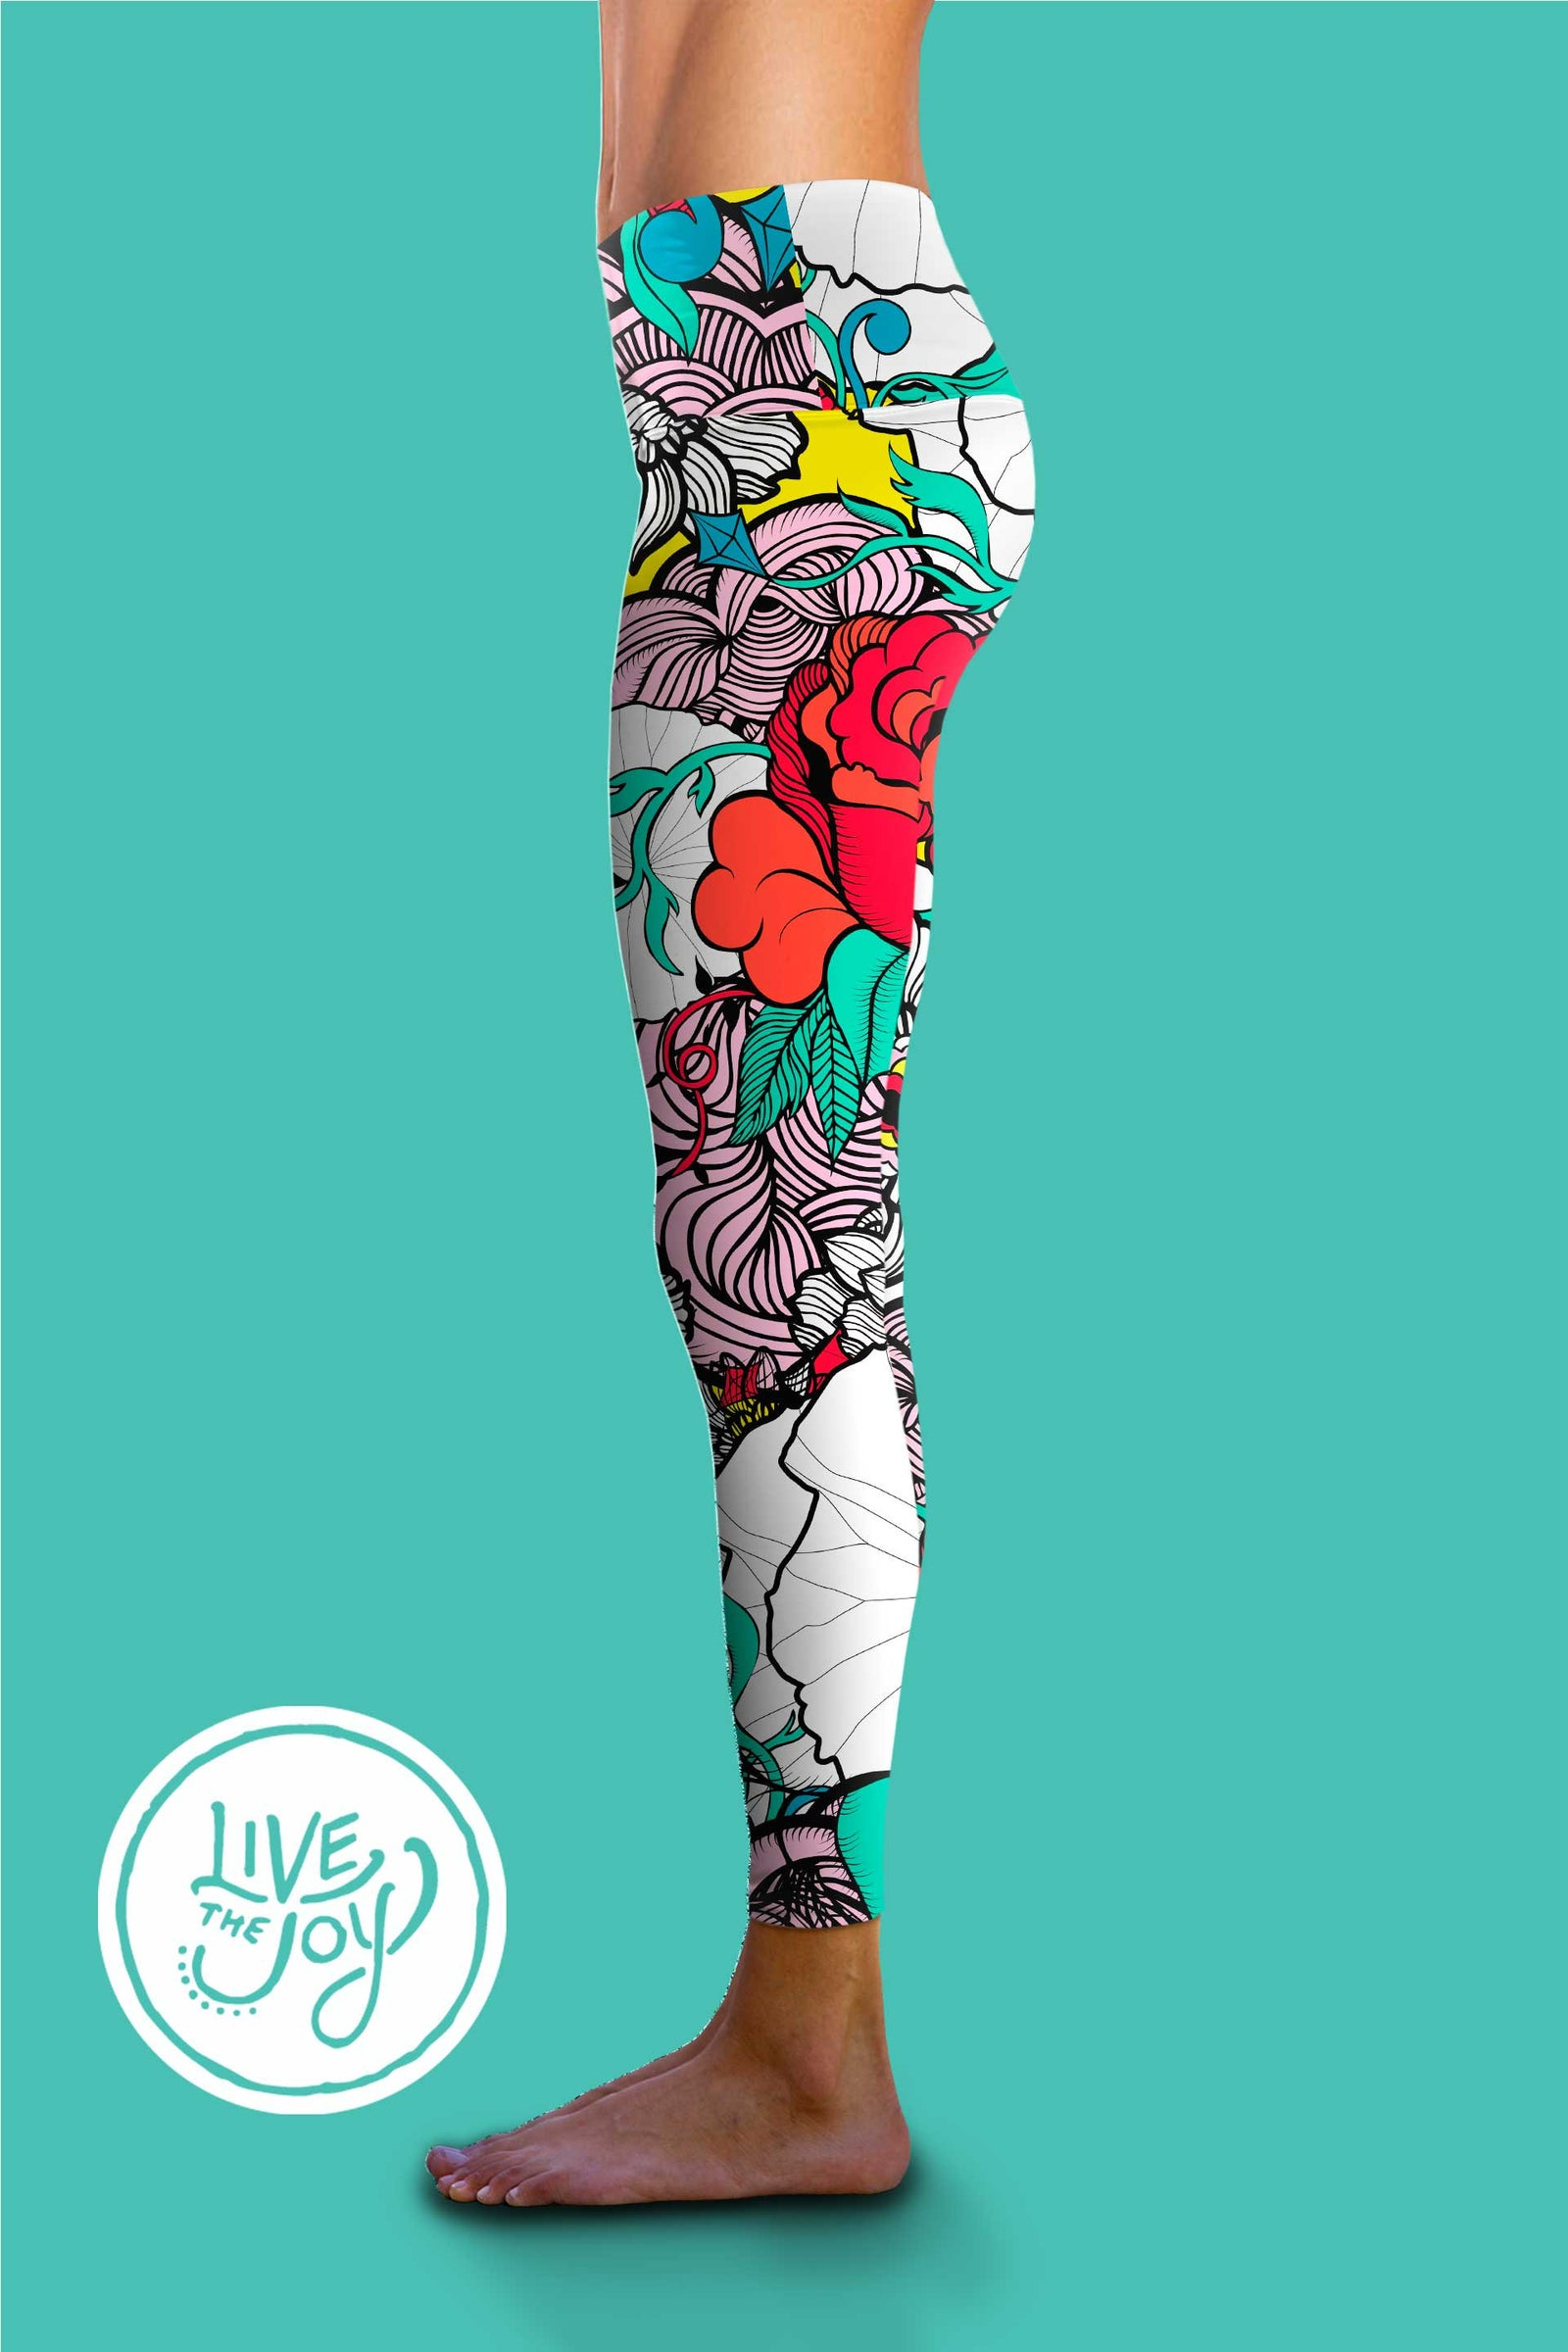 Om Shanti Clothing Retro Rose Yoga Pants - These versatile, high-rise tights were designed to fit like a second skinÌÎ_ÌÎÌà_ÌÎ_ÌÎÌà_‰ۡó»?ÌÎ_ÌÎÌà__ÌÎ_ÌÎÌà_‰ۡó»?å±perfect for yoga or the gym.